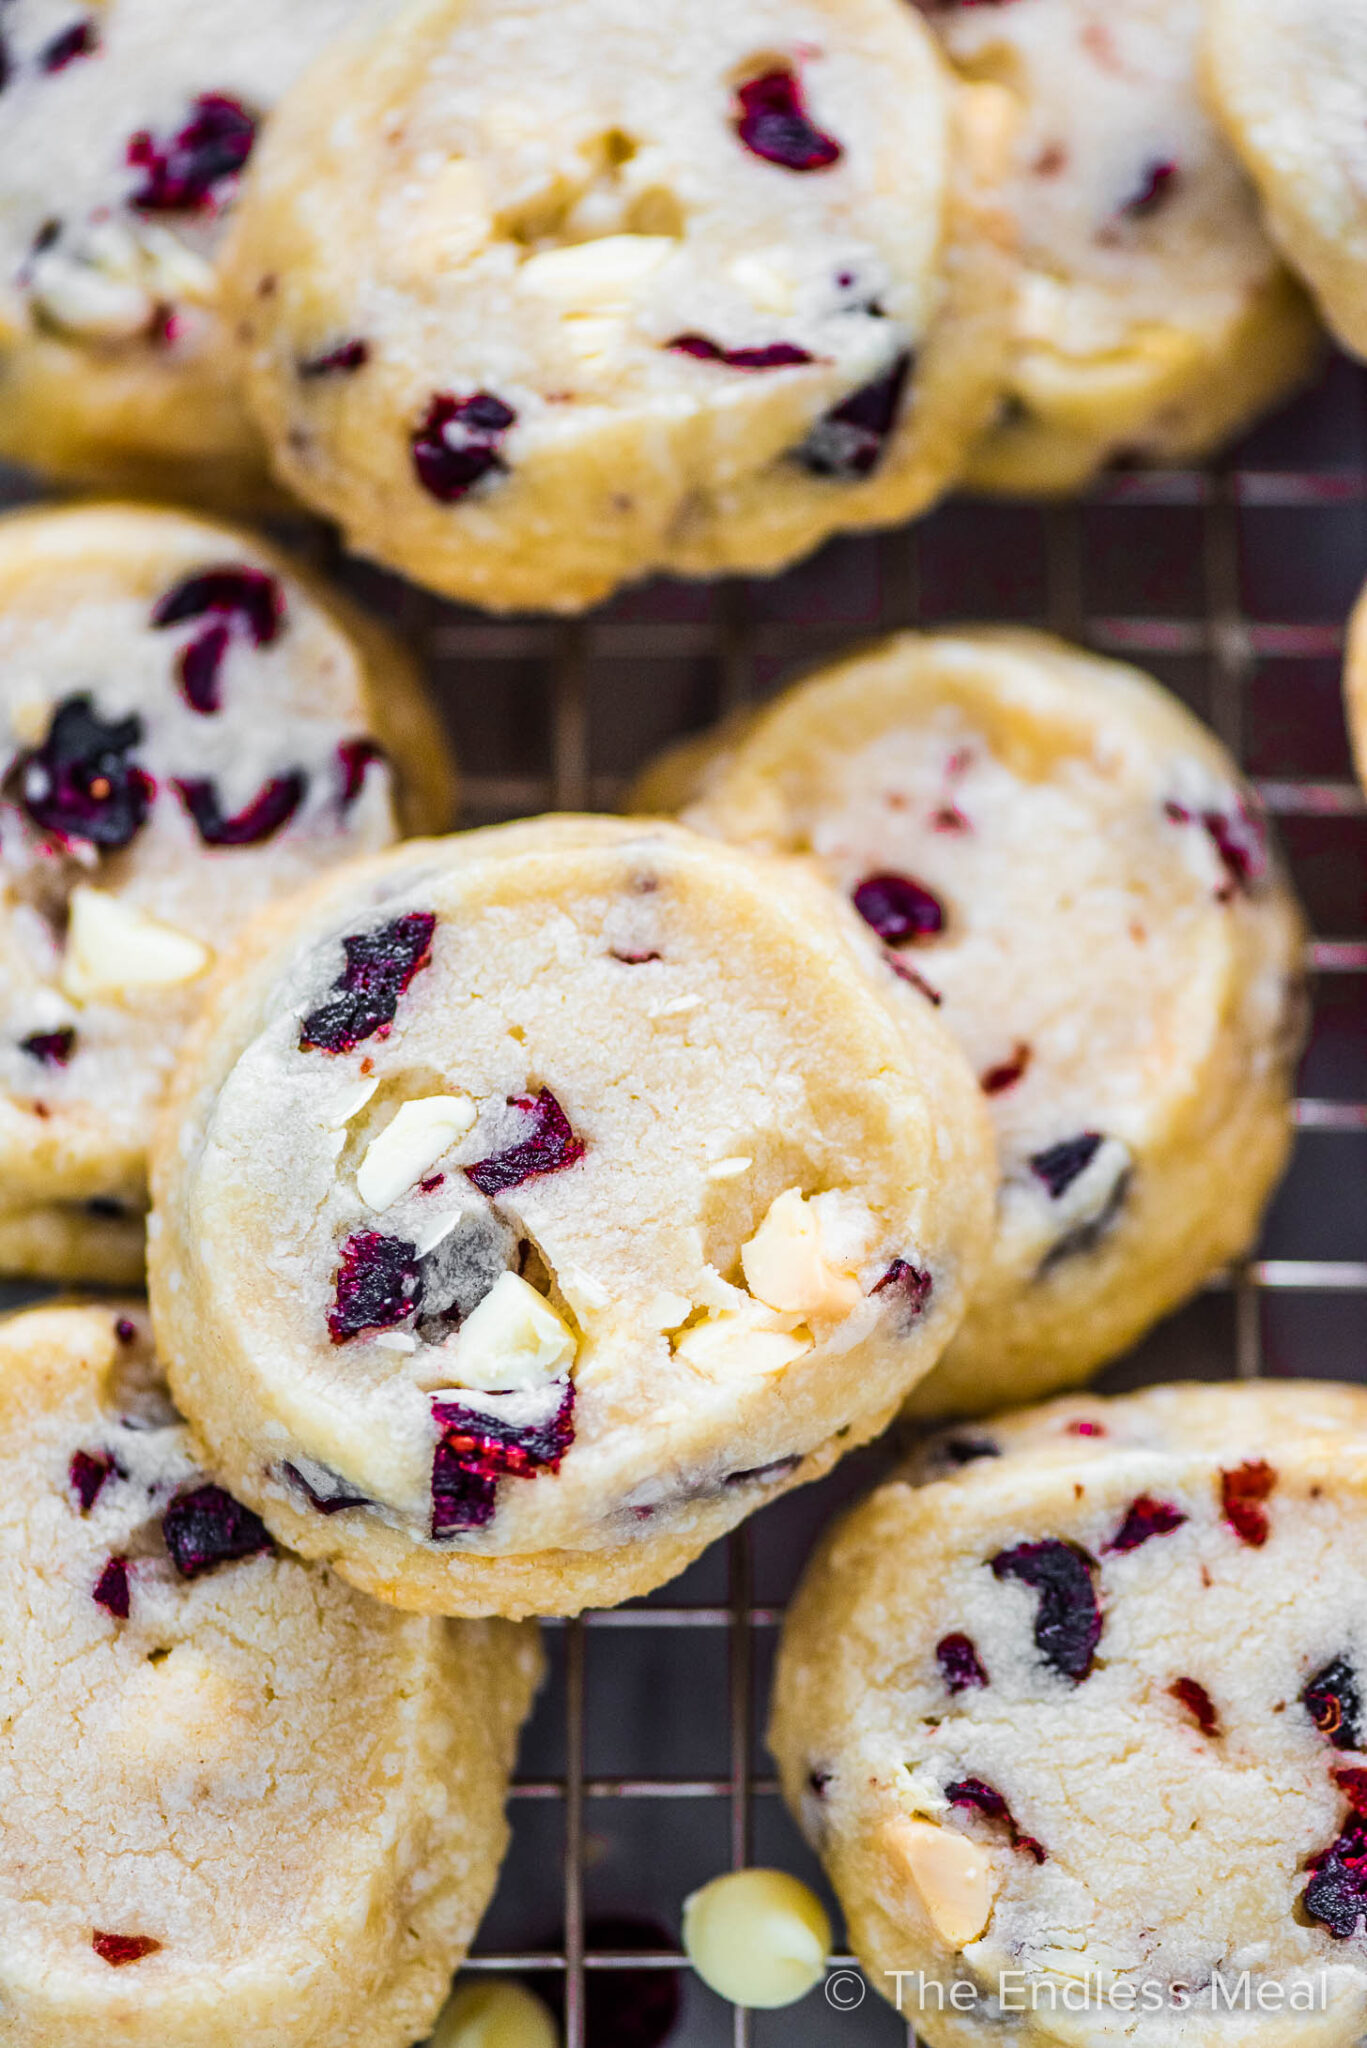 A closeup of a slice and bake white chocolate cranberry cookie.